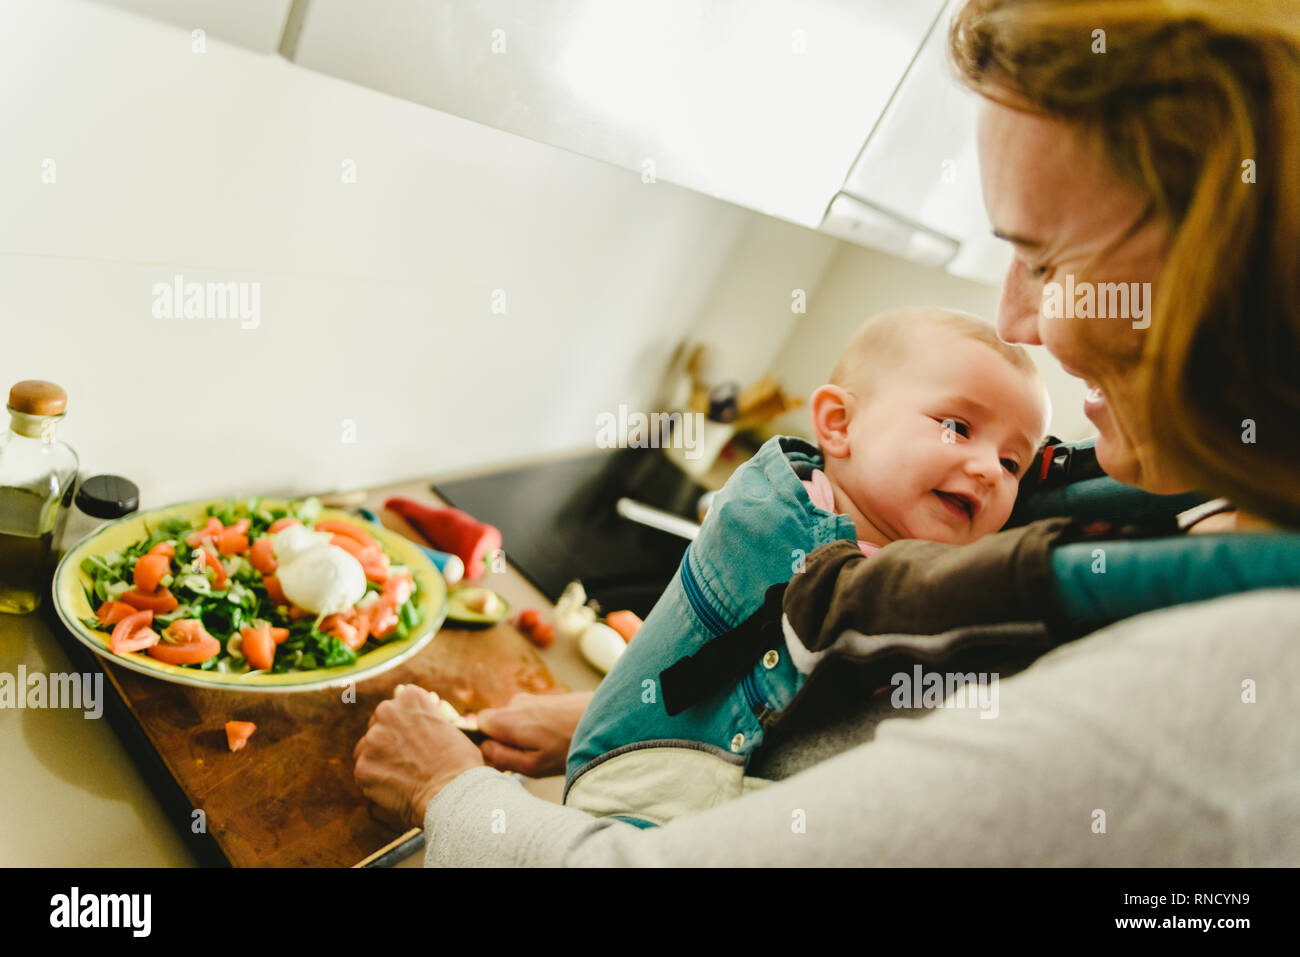 63c08d3a4f6 Smiling baby ported in baby carrier backpack looking at his mother while  she cooks